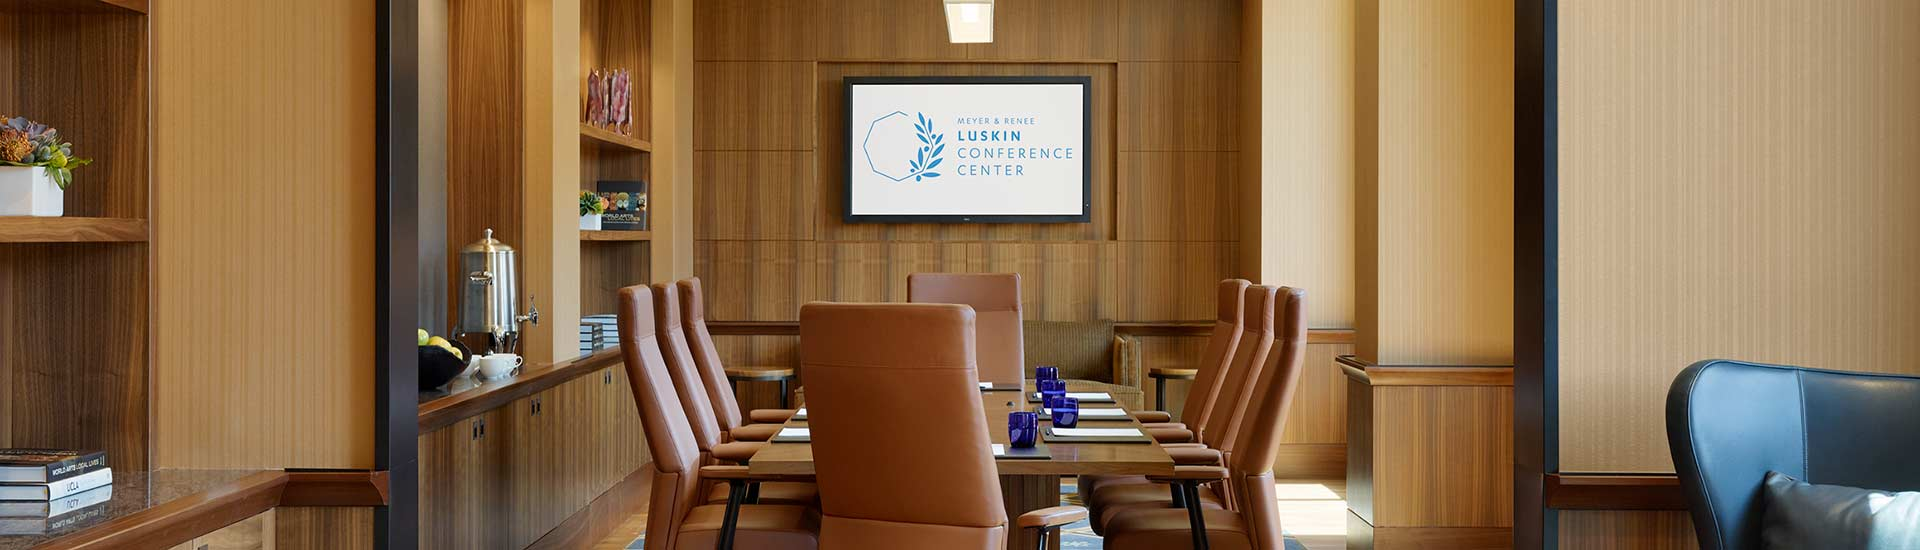 iacc conference room at luskin hotel